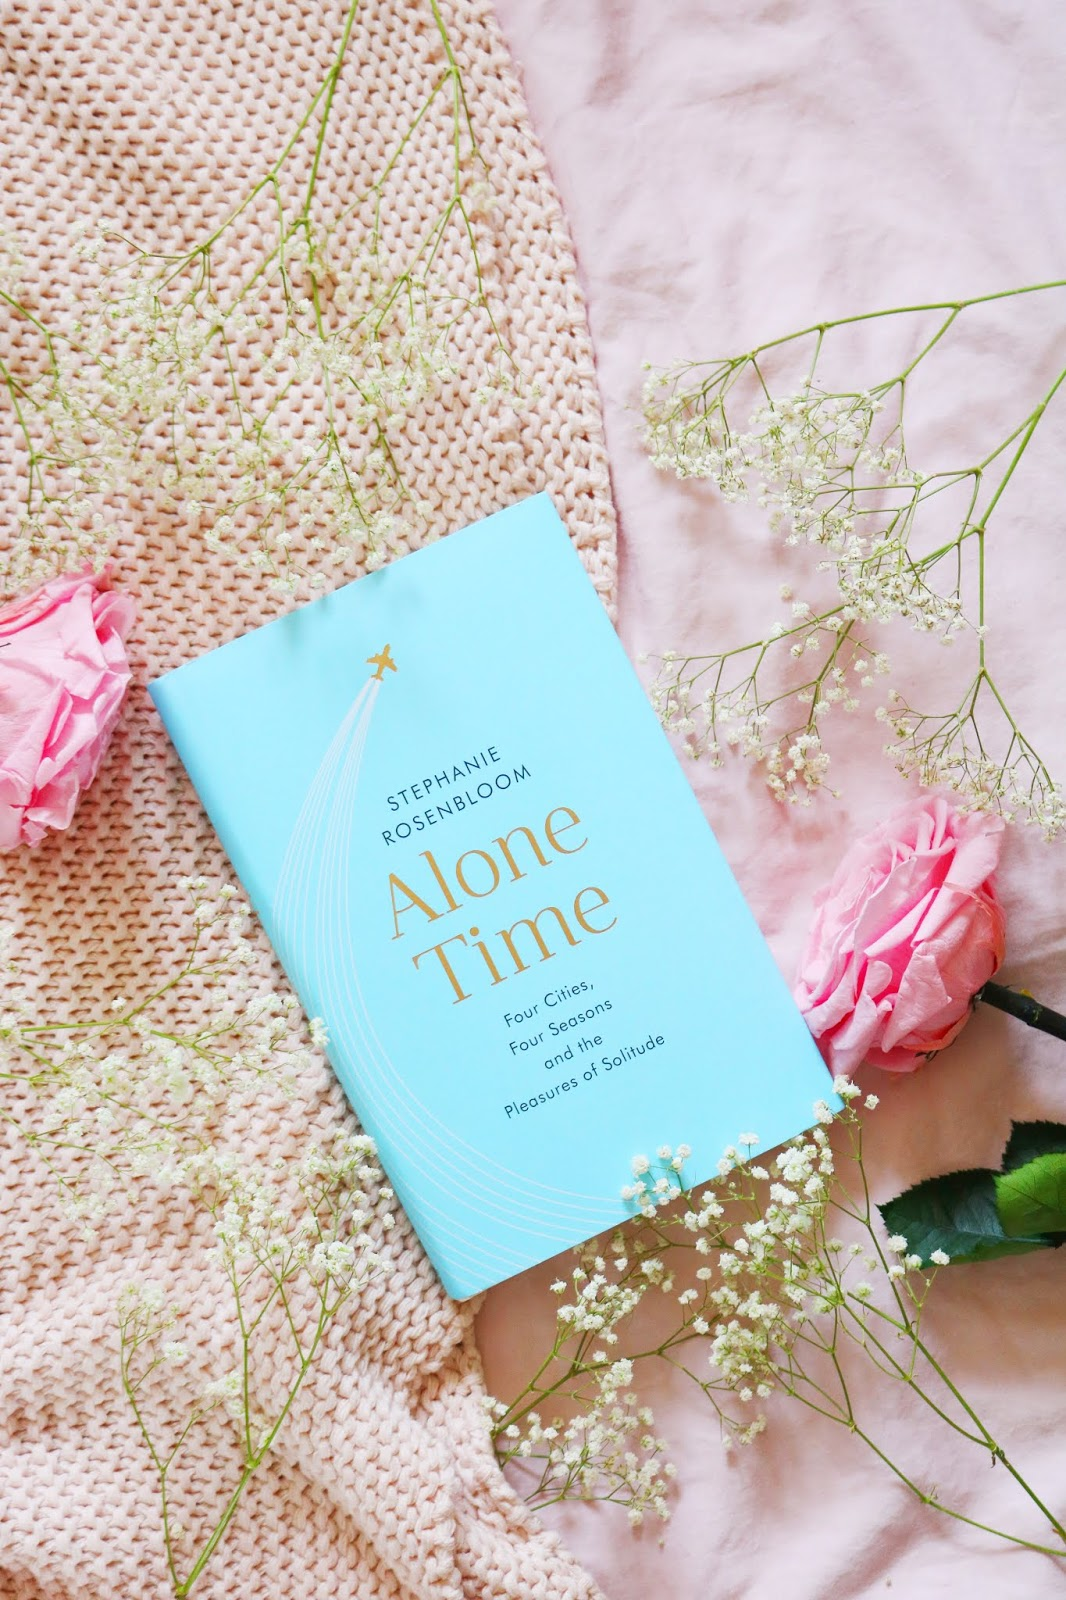 Blog Tour: Alone Time by Stephanie Rosenbloom